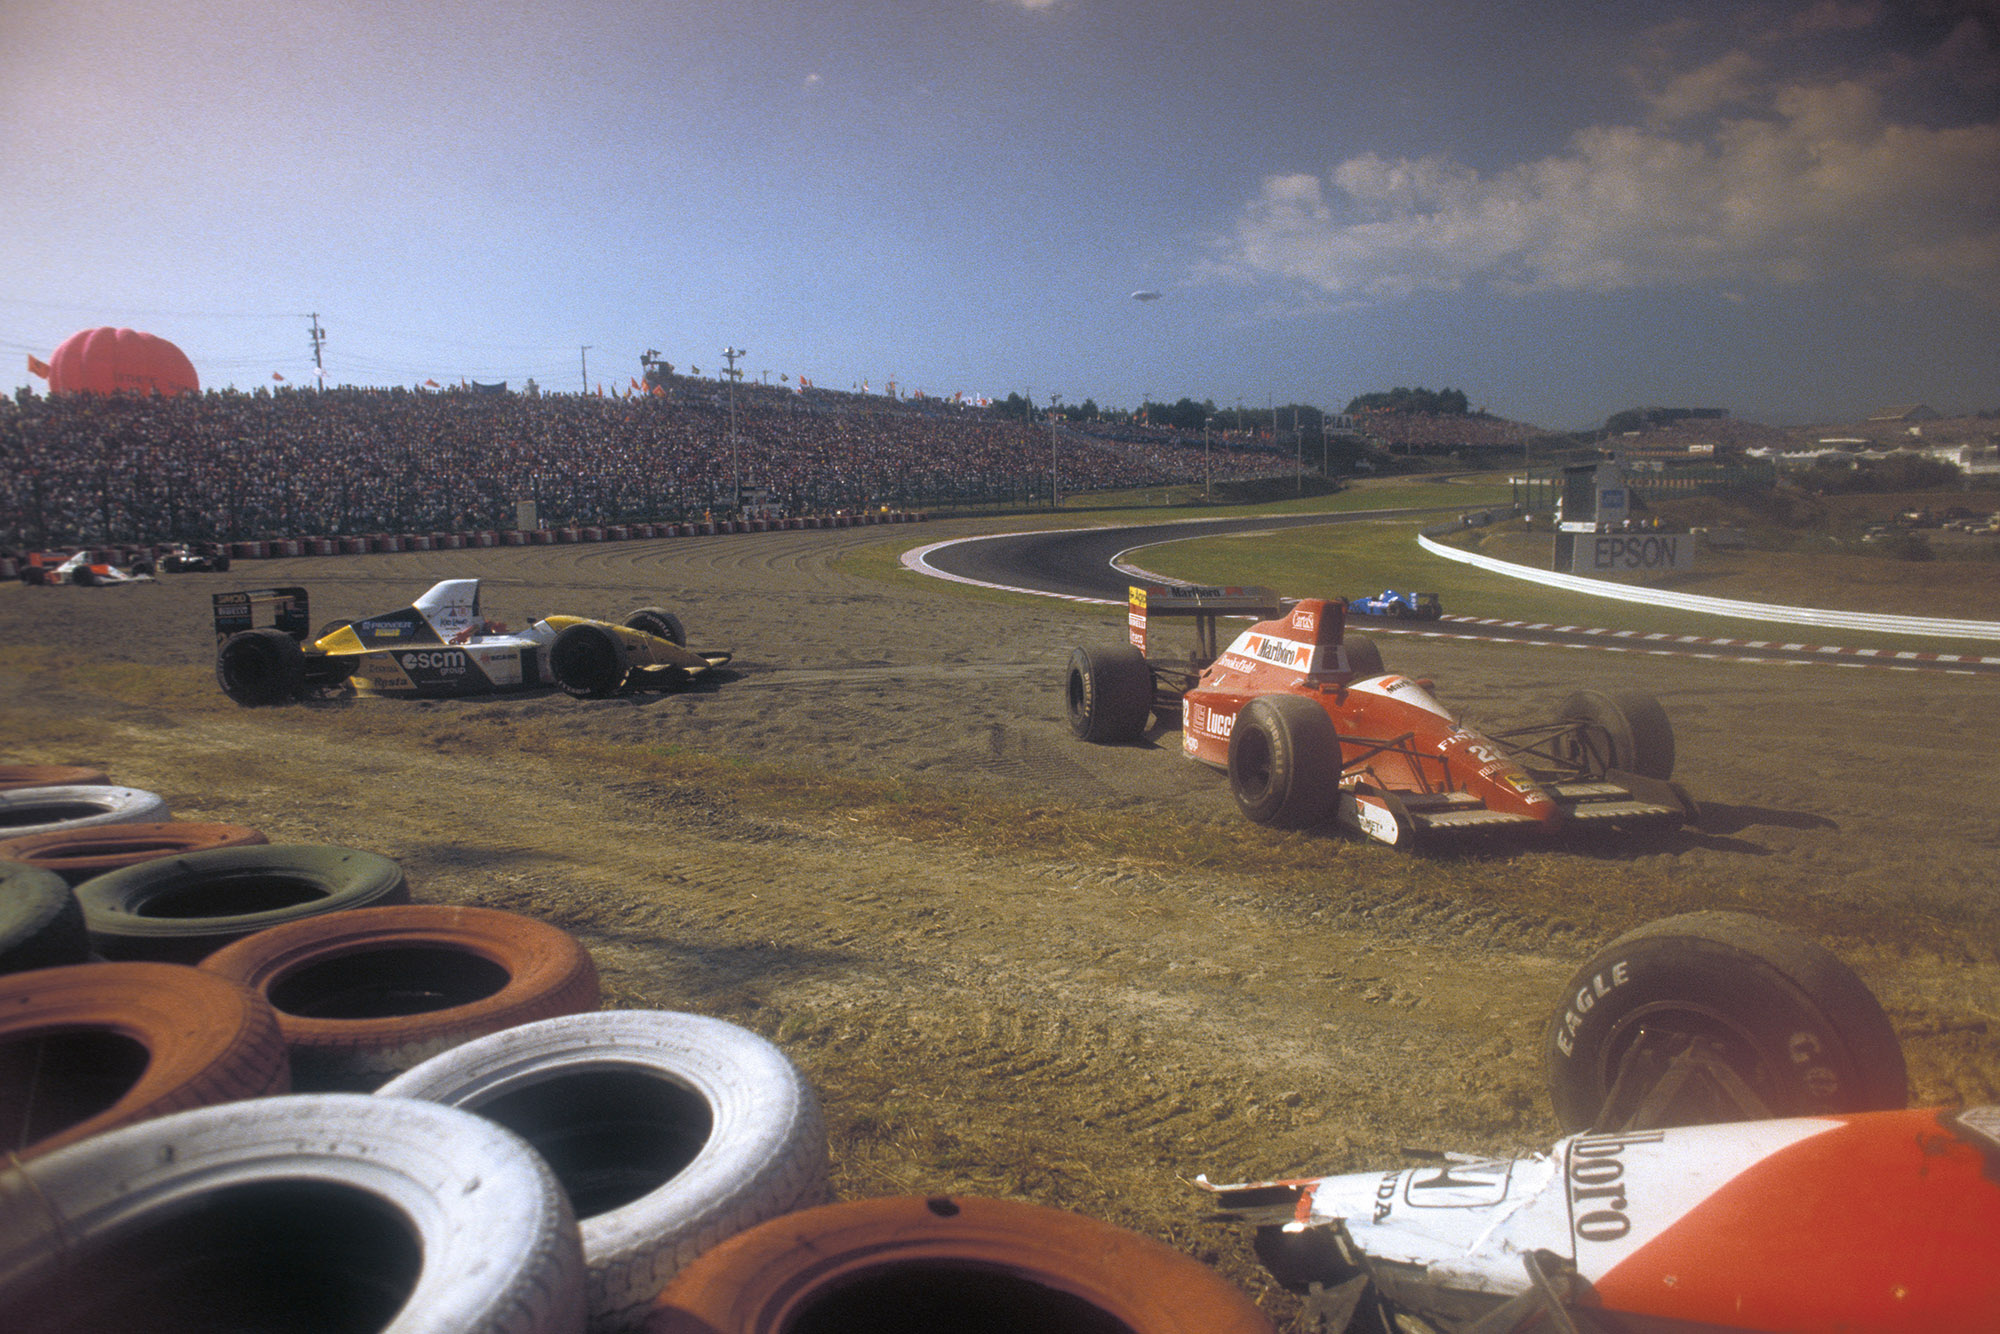 Crashed cars litter the side of the track after the first corner crash at the 1990 Japanese Grand Prix